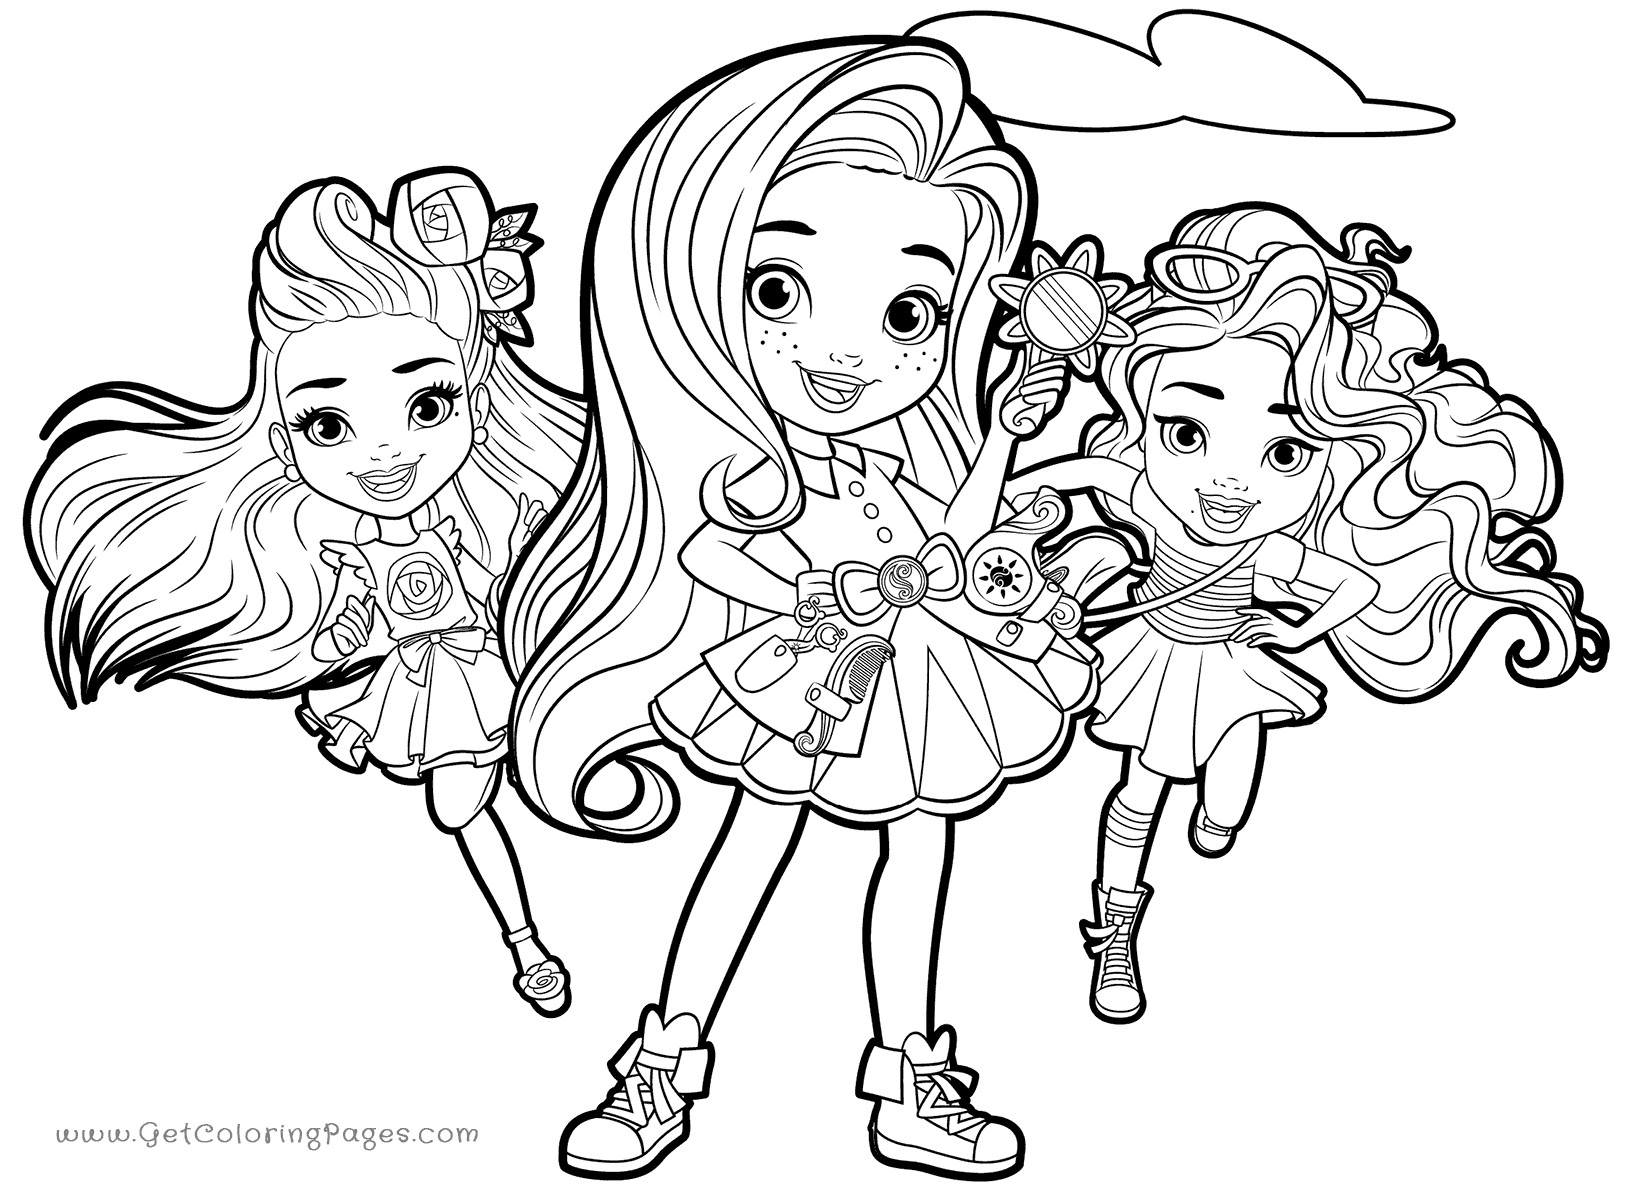 1640x1200 Glamorous Nickelodeon Coloring Sheets Colorings Me